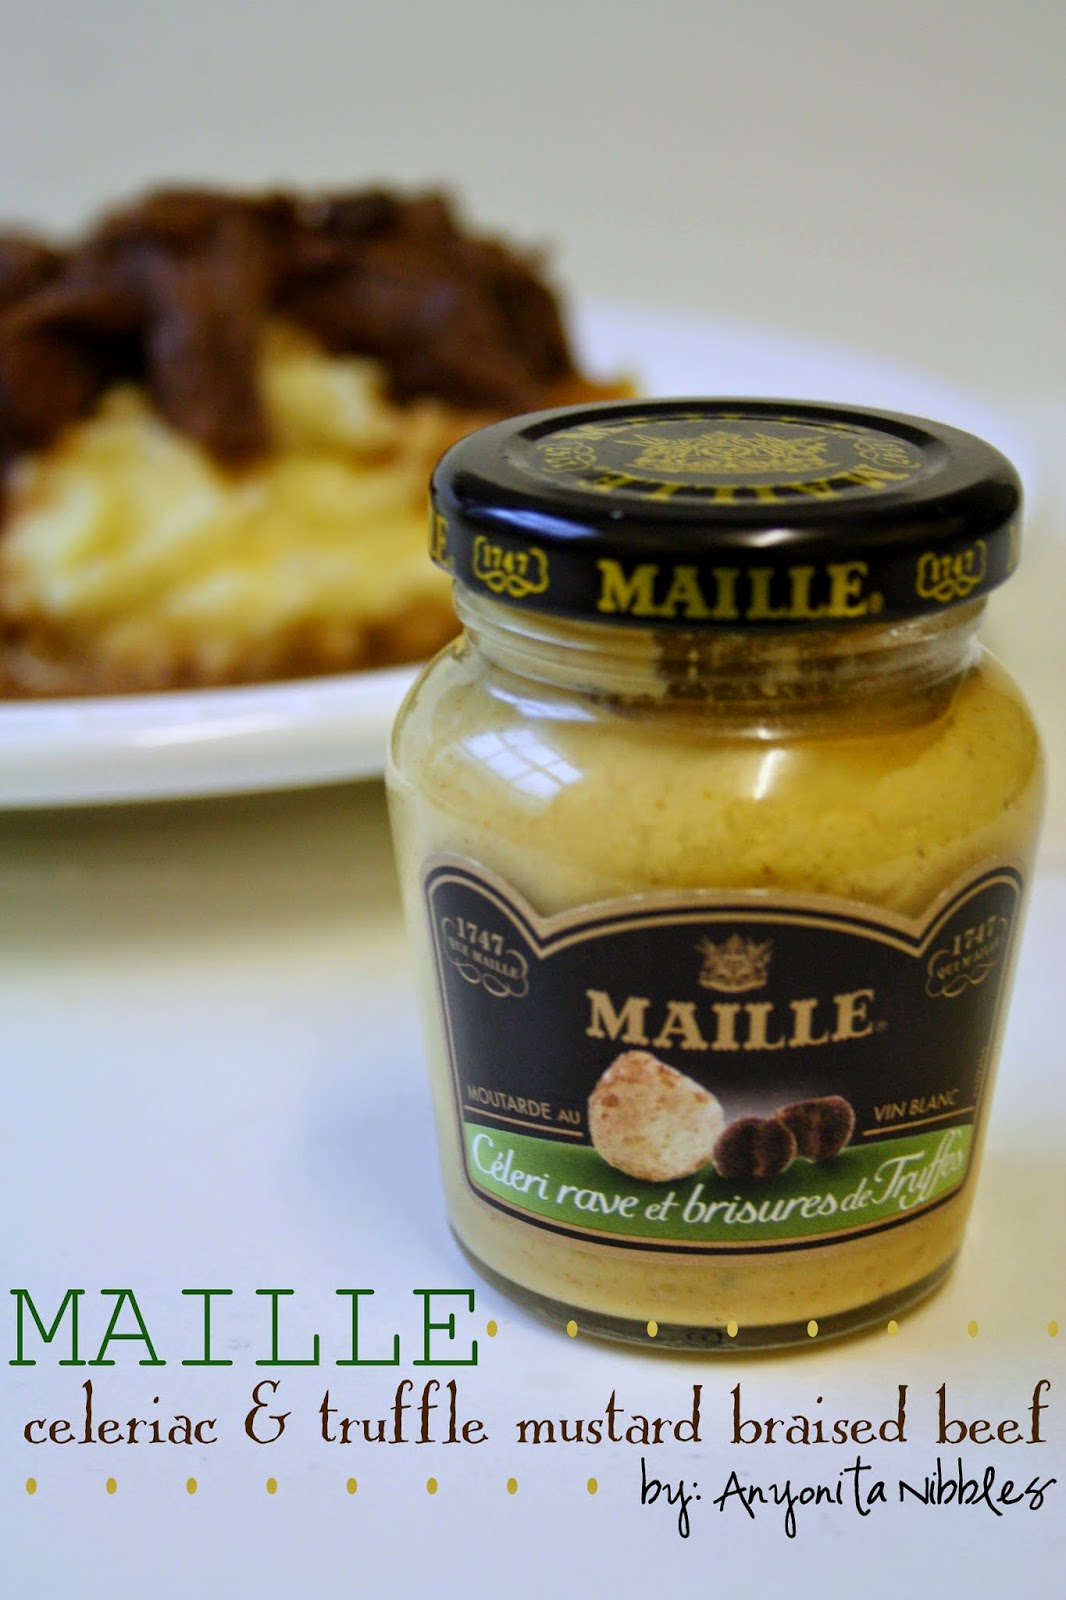 Maille's celeriac and truffle mustard cooked with beef